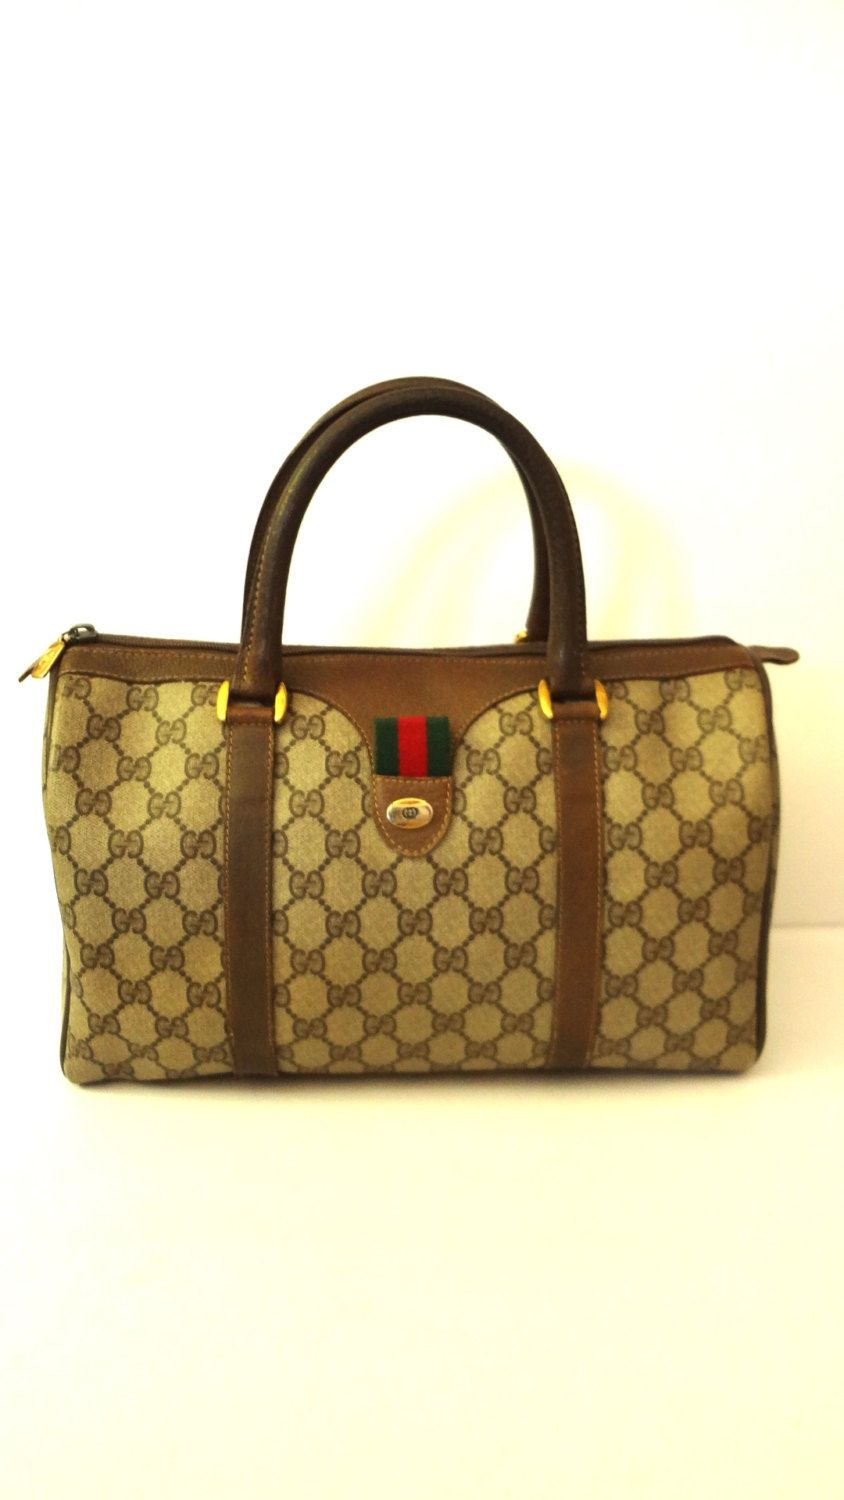 6fcb44095f78c Authentic Vintage GUCCI Accessory Collection Speedy Doctor handbag Iconic  tote by DoorstepFashions on Etsy